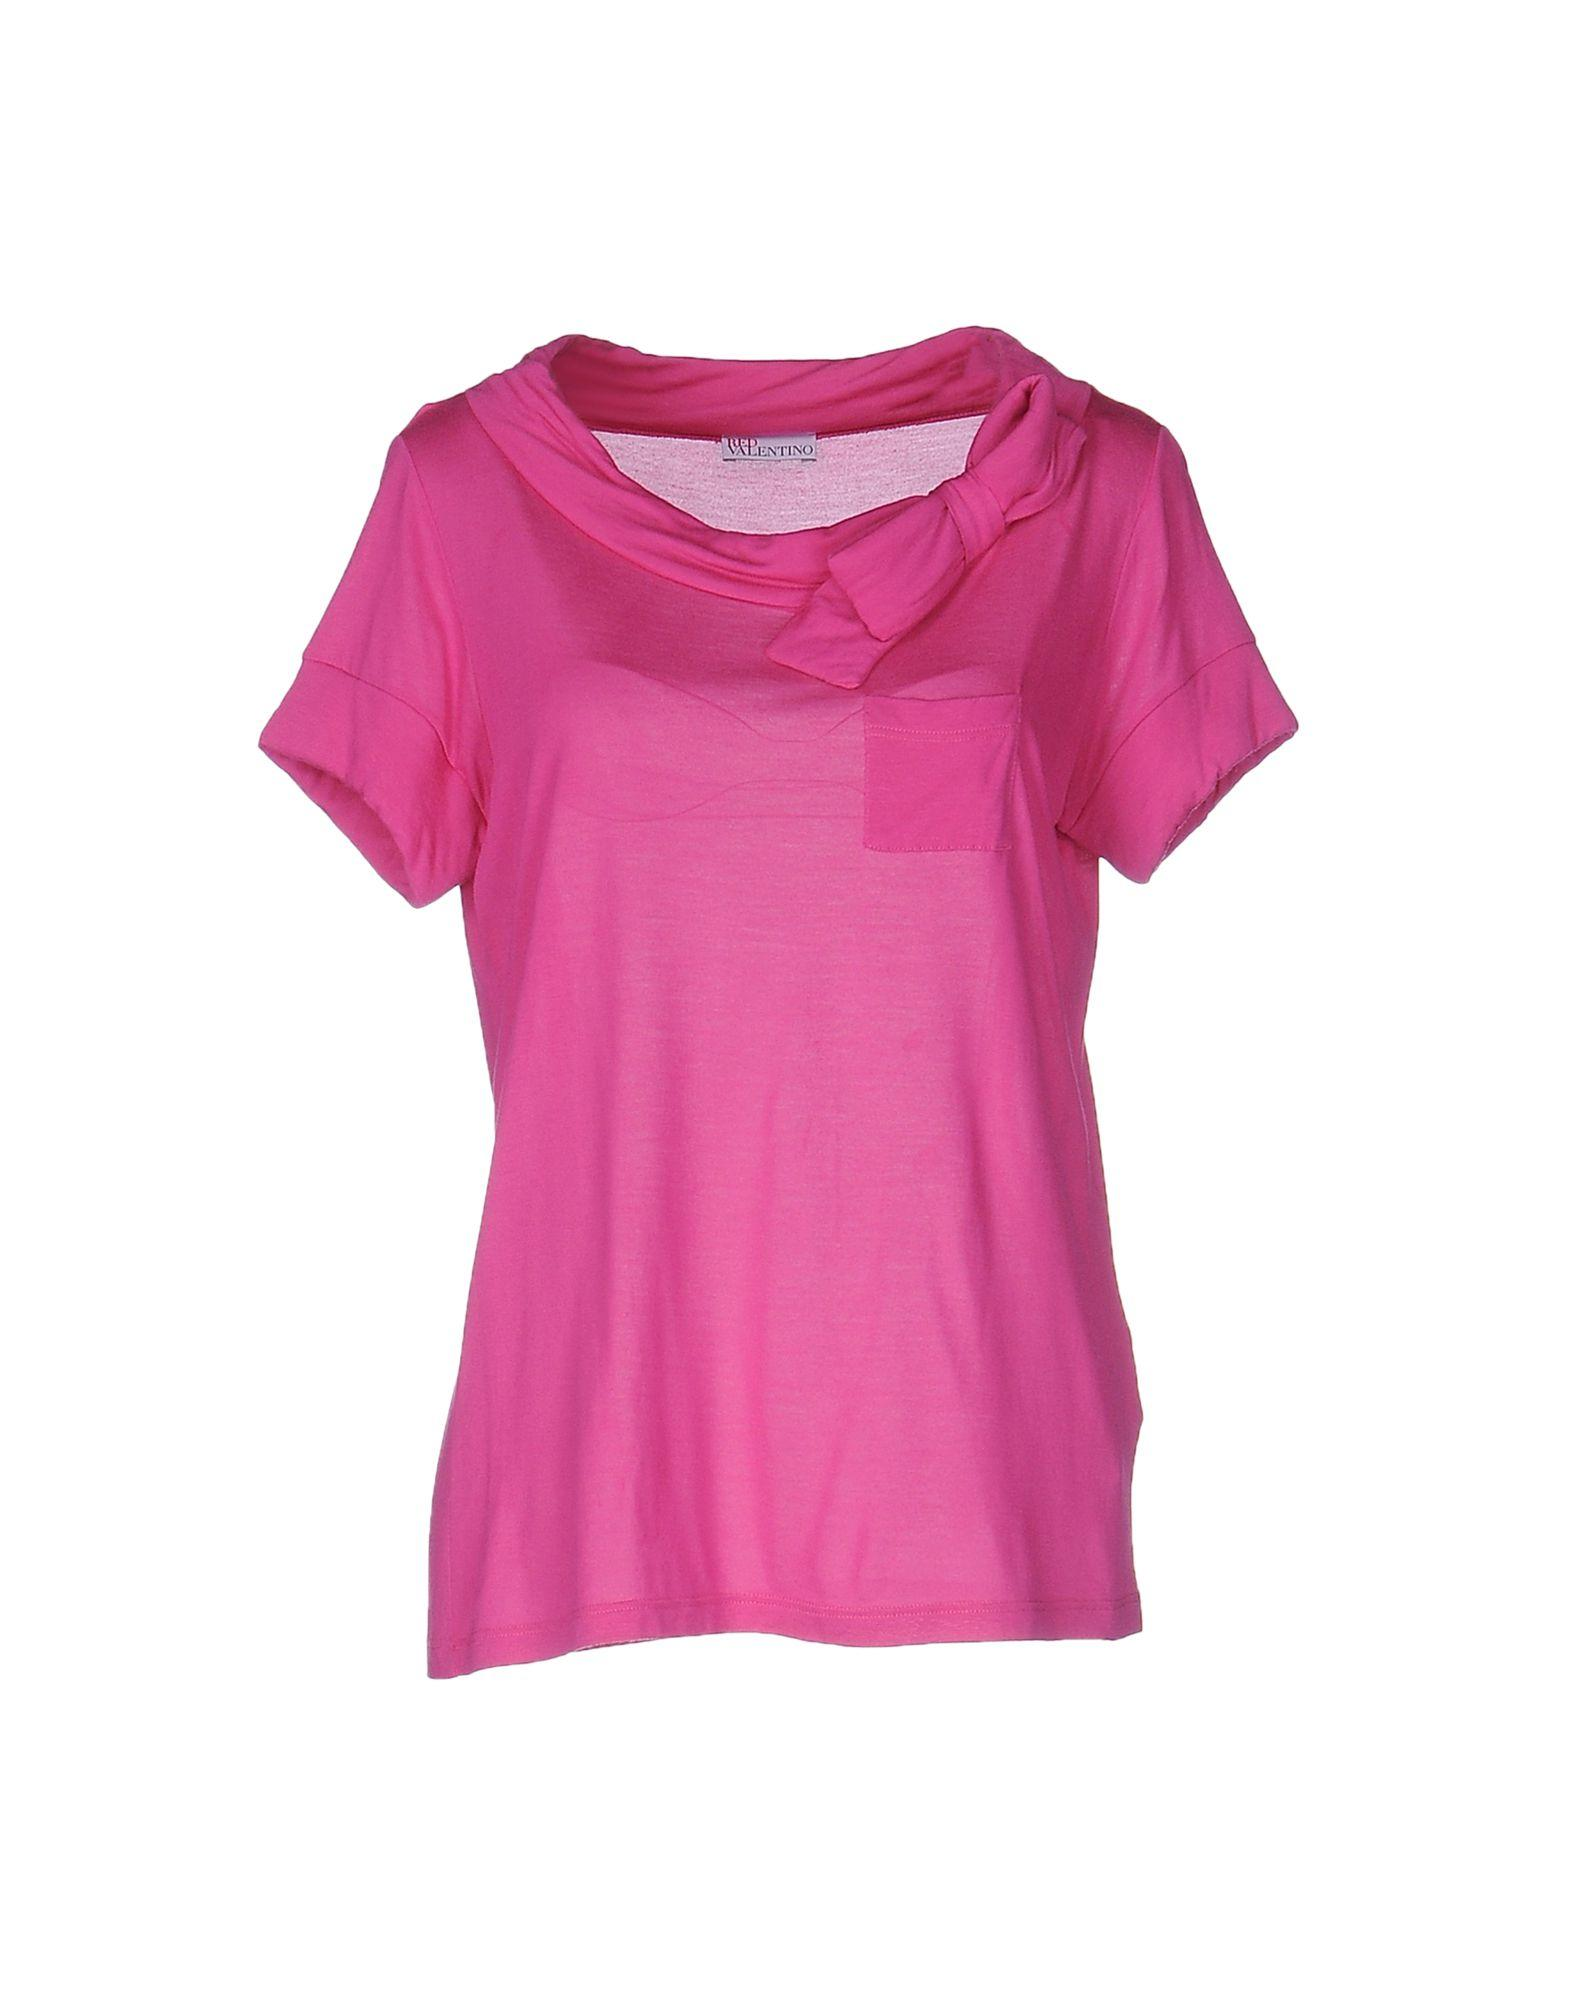 Red valentino t shirt lyst for Red valentino t shirt